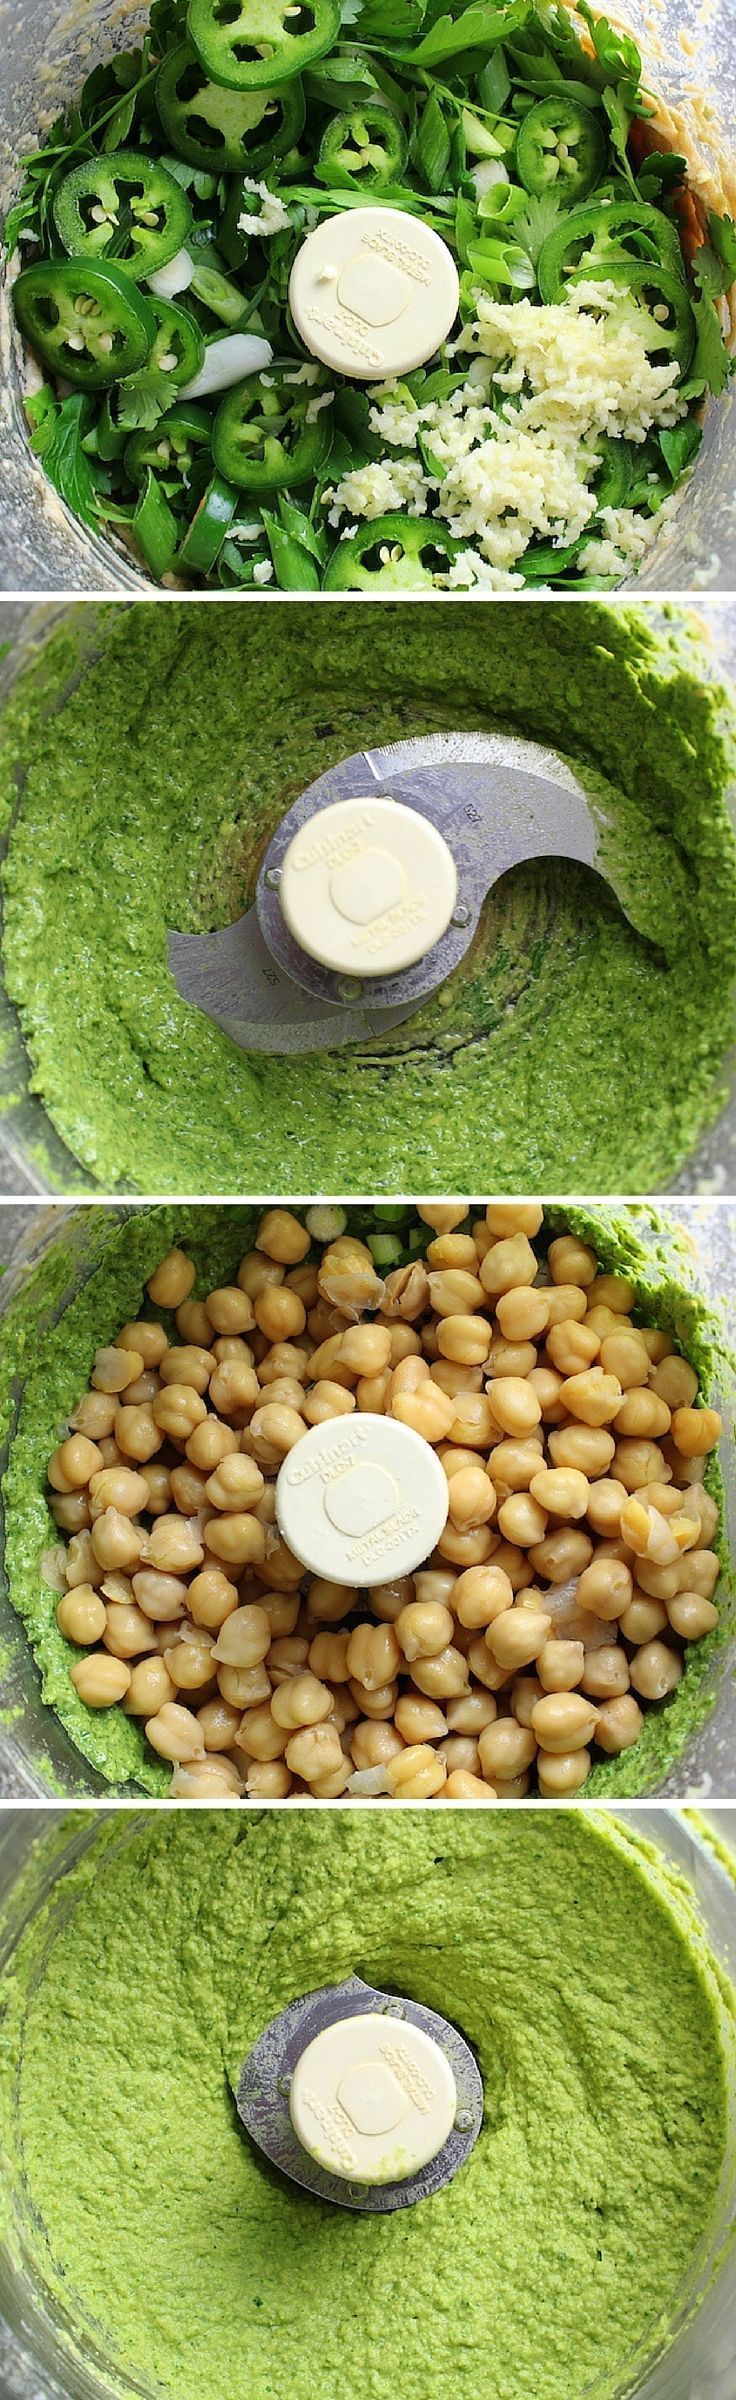 Easy Spicy Green Hummus: w/ chick peas, tahini, jalapeno, lemon juice, olive oil, garlic, cilantro, and parsley.  http://tasteandsee.com